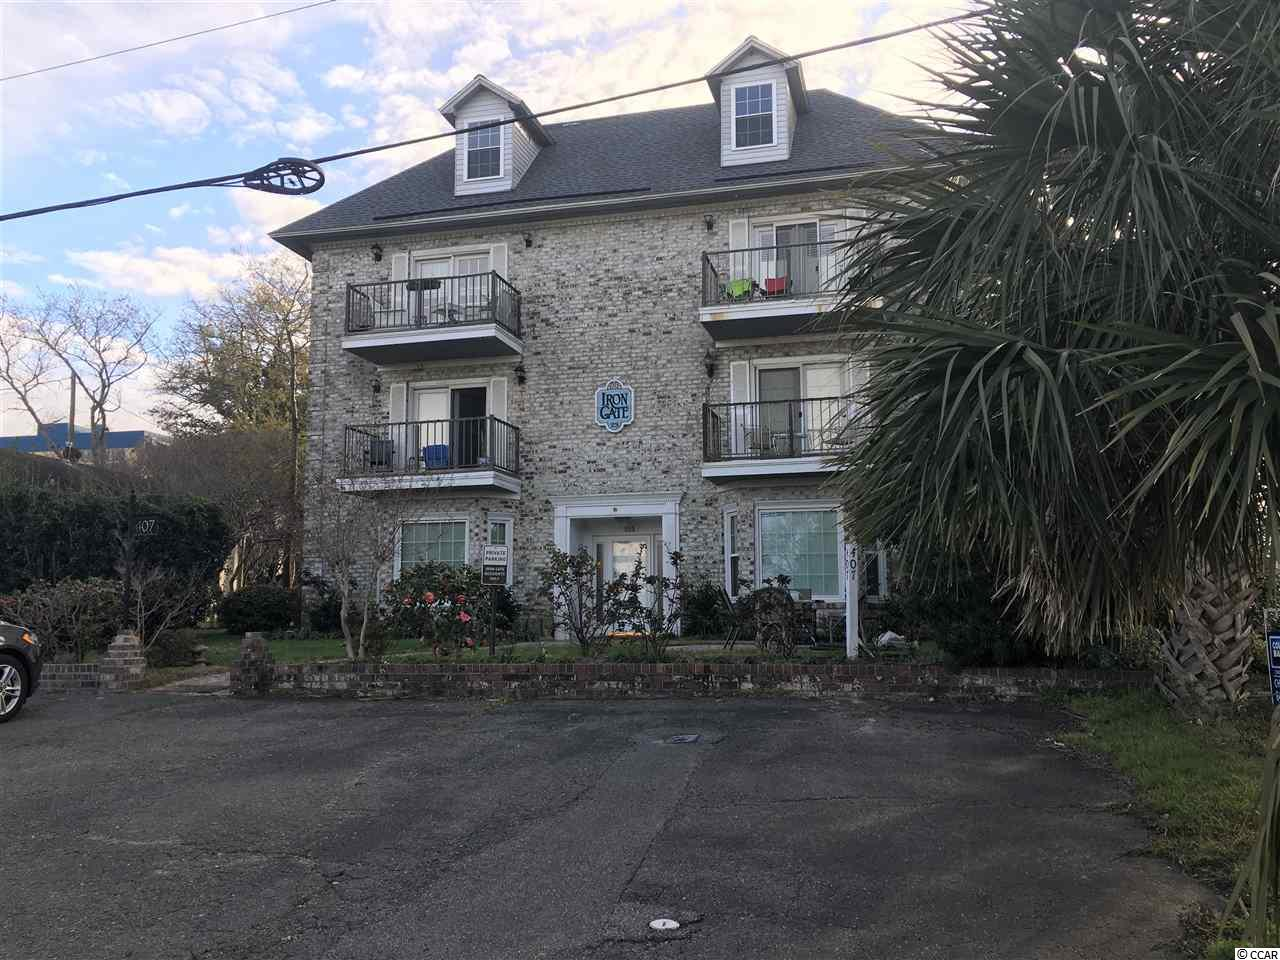 Located in the Iron Gate complex. Iron Gate is 1 block from the sandy shores of the Atlantic ocean off of 23rd Ave N. in Myrtle Beach. 2 bedrooms,  2 bath unit. This is an excellent opportunity. The unit has been updated and offers solid surface countertops, stainless steel appliances, tile flooring, laundry room. Check this out today! Keep as an annual rental or convert to short term! You have lots of options!  Square footage is approximate and not guaranteed.  Buyer is responsible for verification.